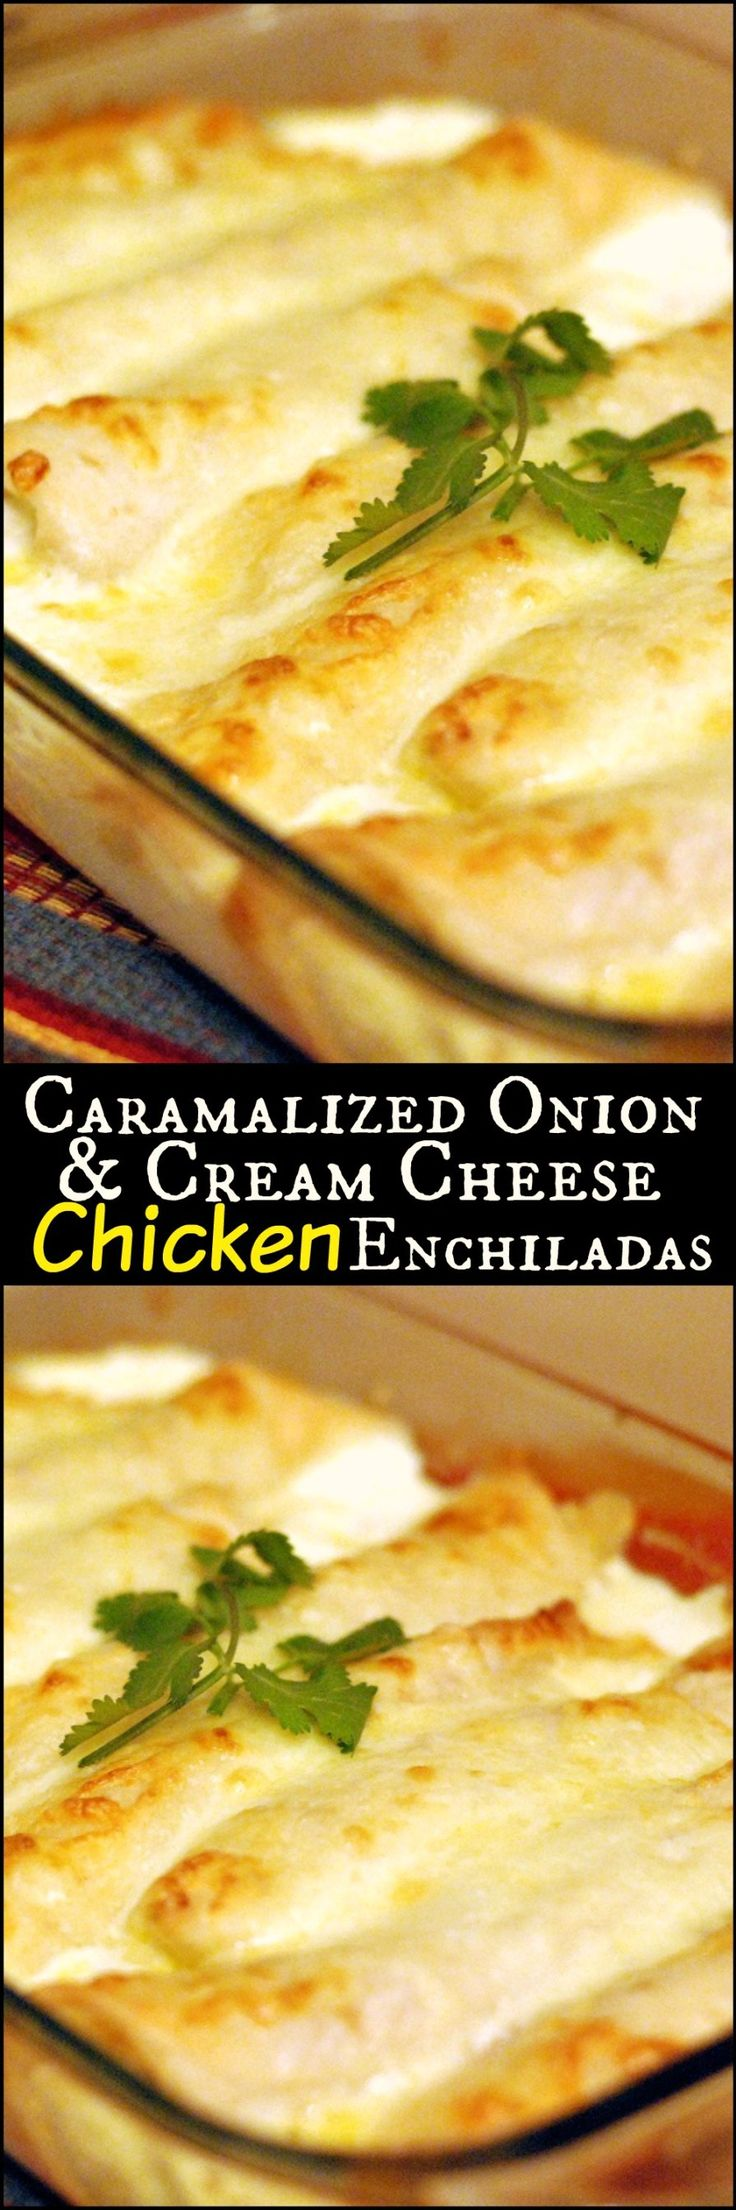 Caramelized Onion & Cream Cheese Chicken Enchiladas | Aunt Bee's Recipes (Chicken Chili Enchiladas)